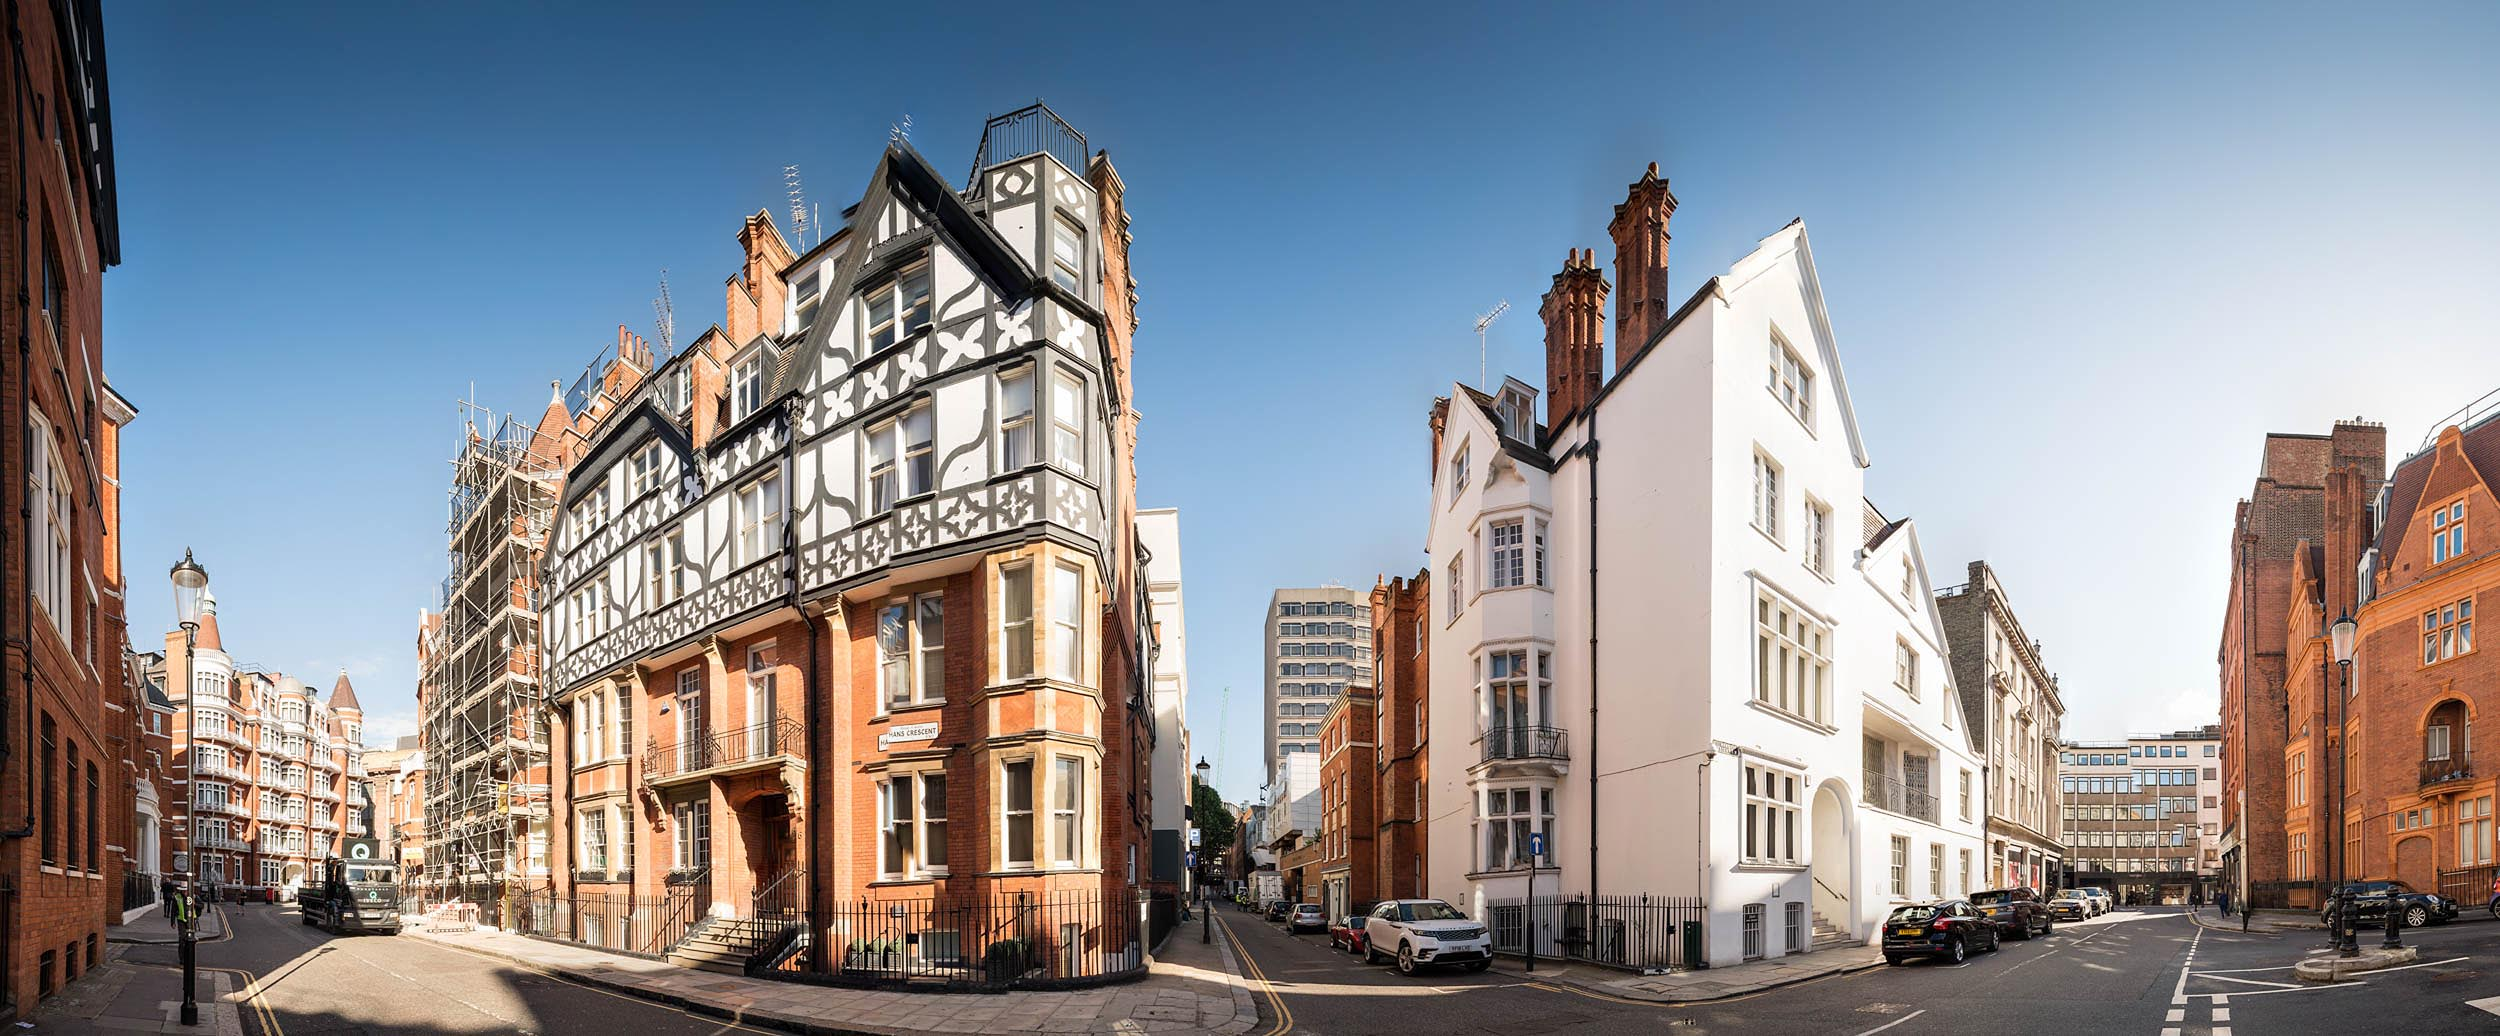 knightsbridge-panoramic-london-architecture-gigapixel